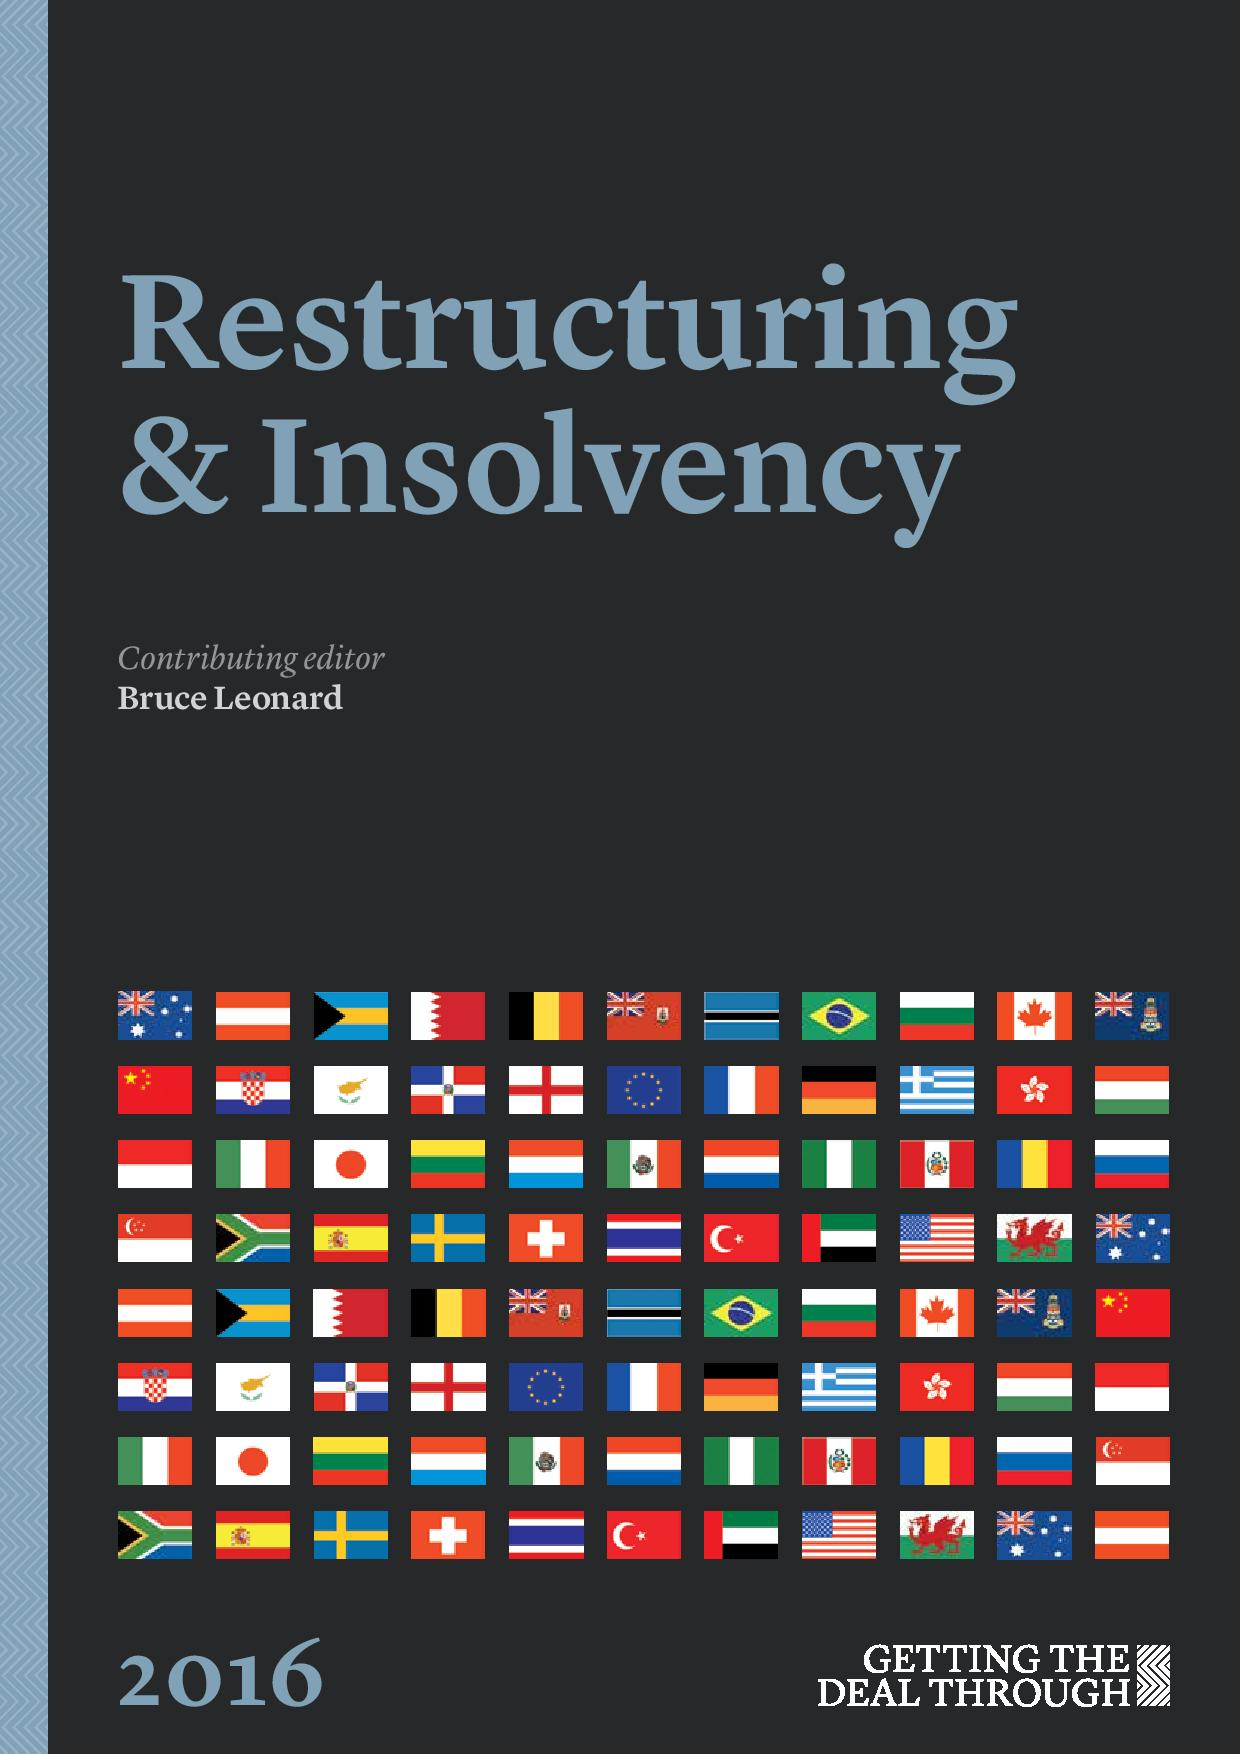 Restructuring & Insolvency 2016